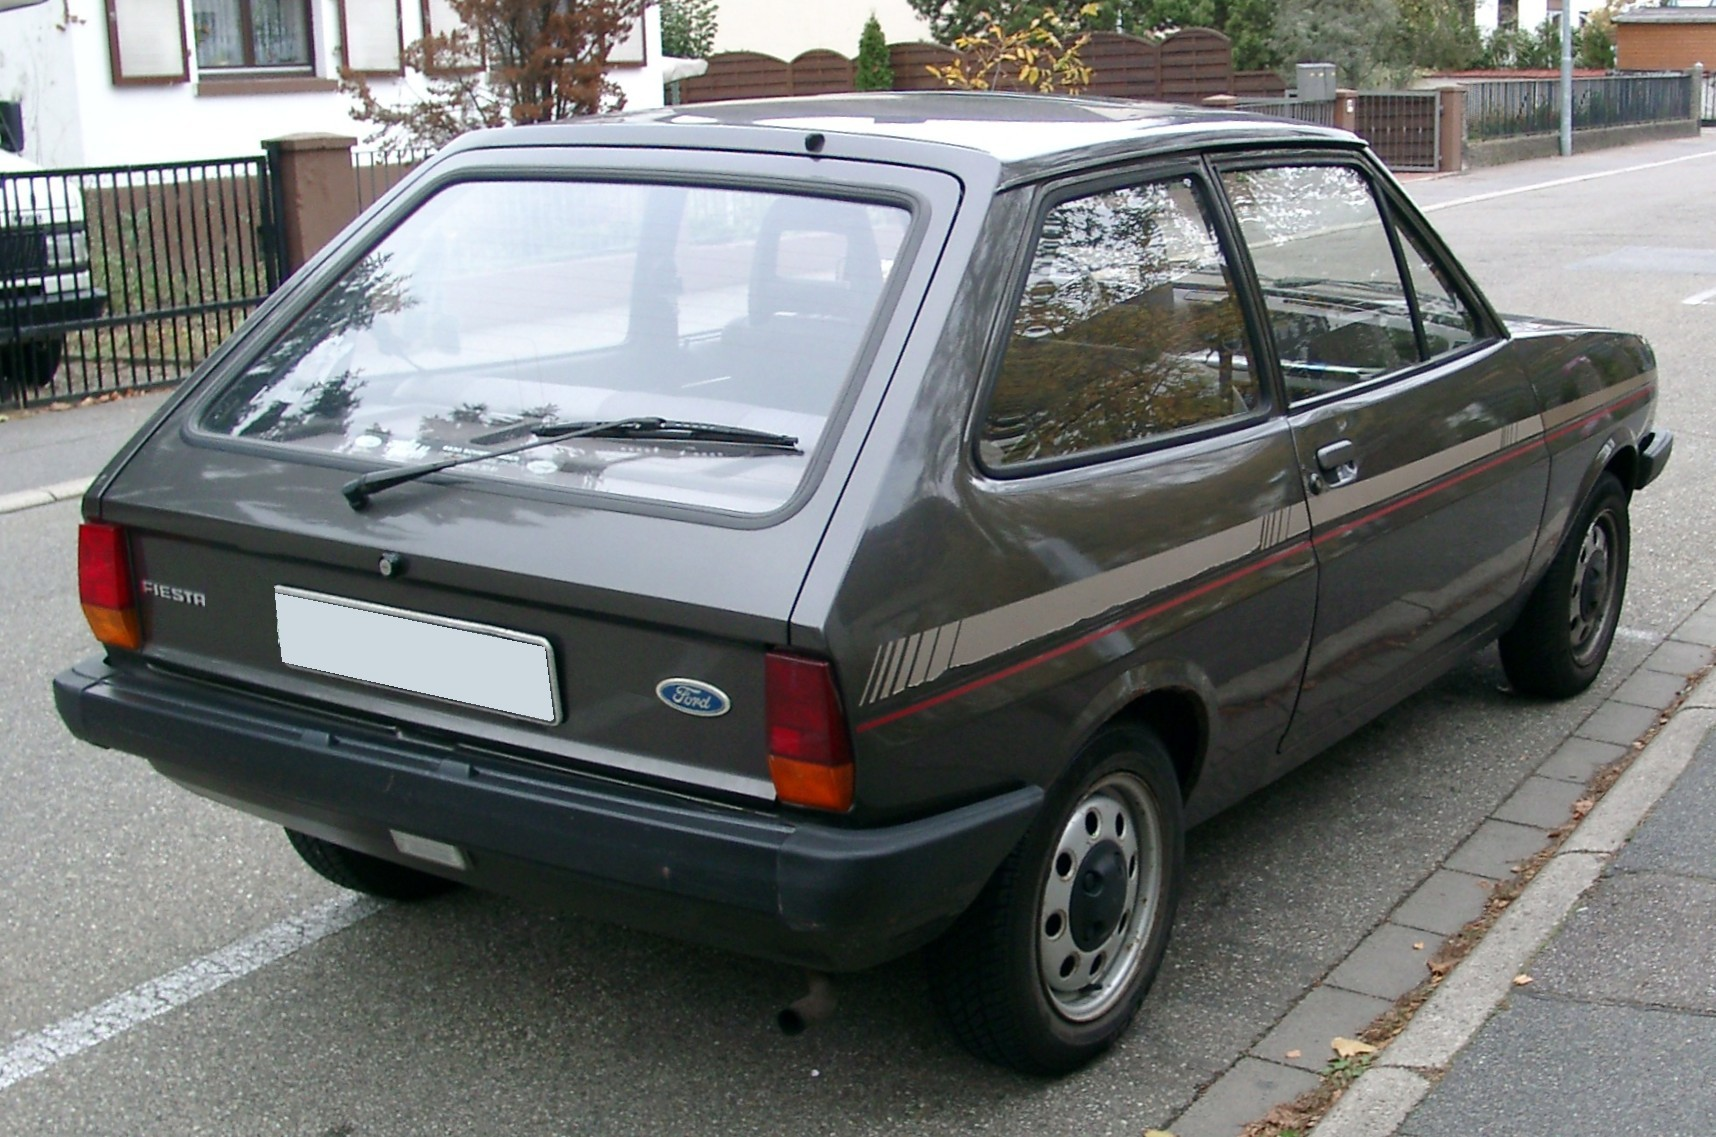 file ford fiesta mk1 rear wikimedia commons. Black Bedroom Furniture Sets. Home Design Ideas